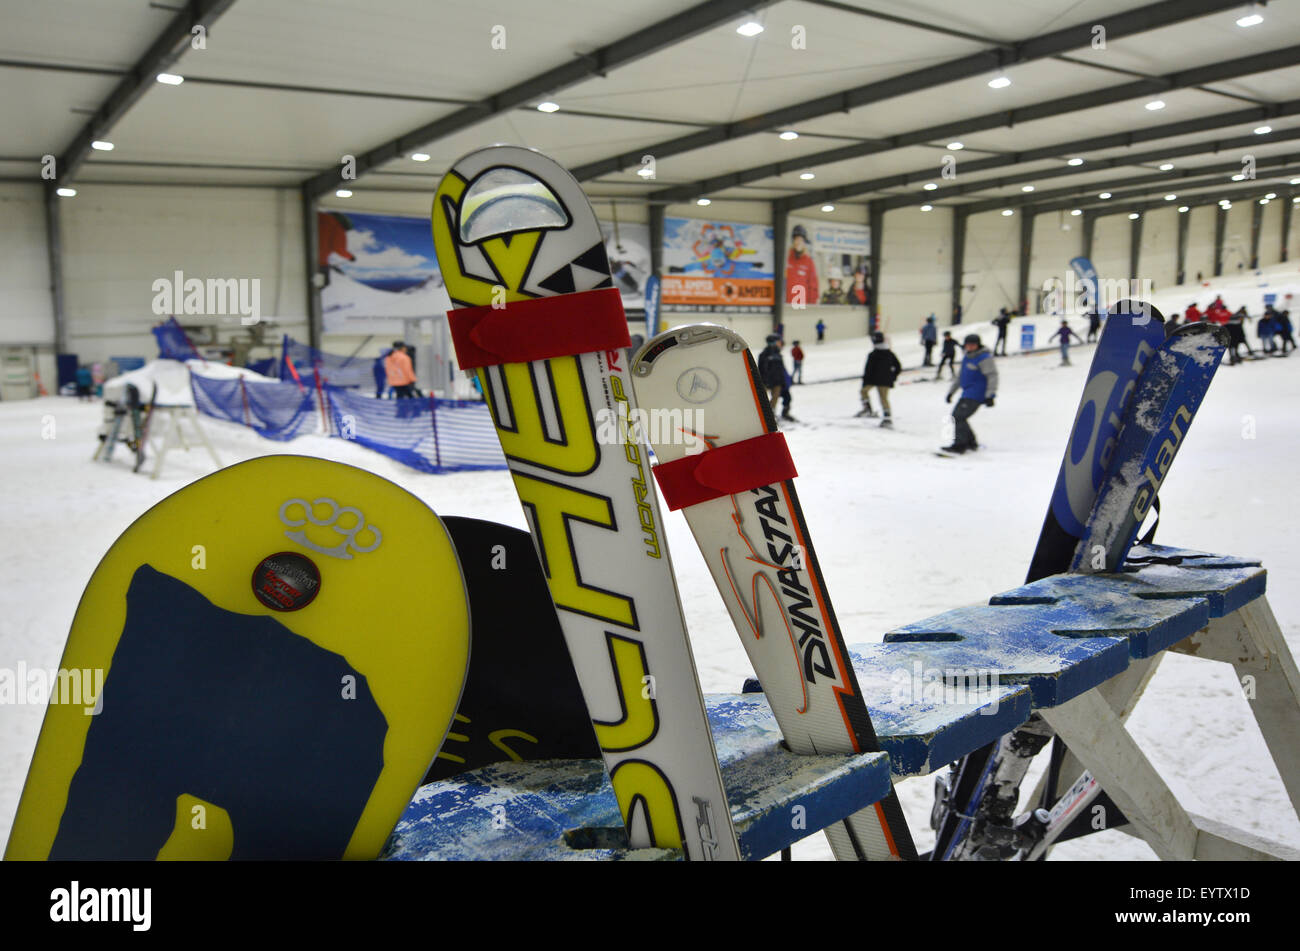 AUCKLAND - JULY 31 2015:Snowboards rack in Snowplanet.It's New Zealand's first indoor snow facility features - Stock Image